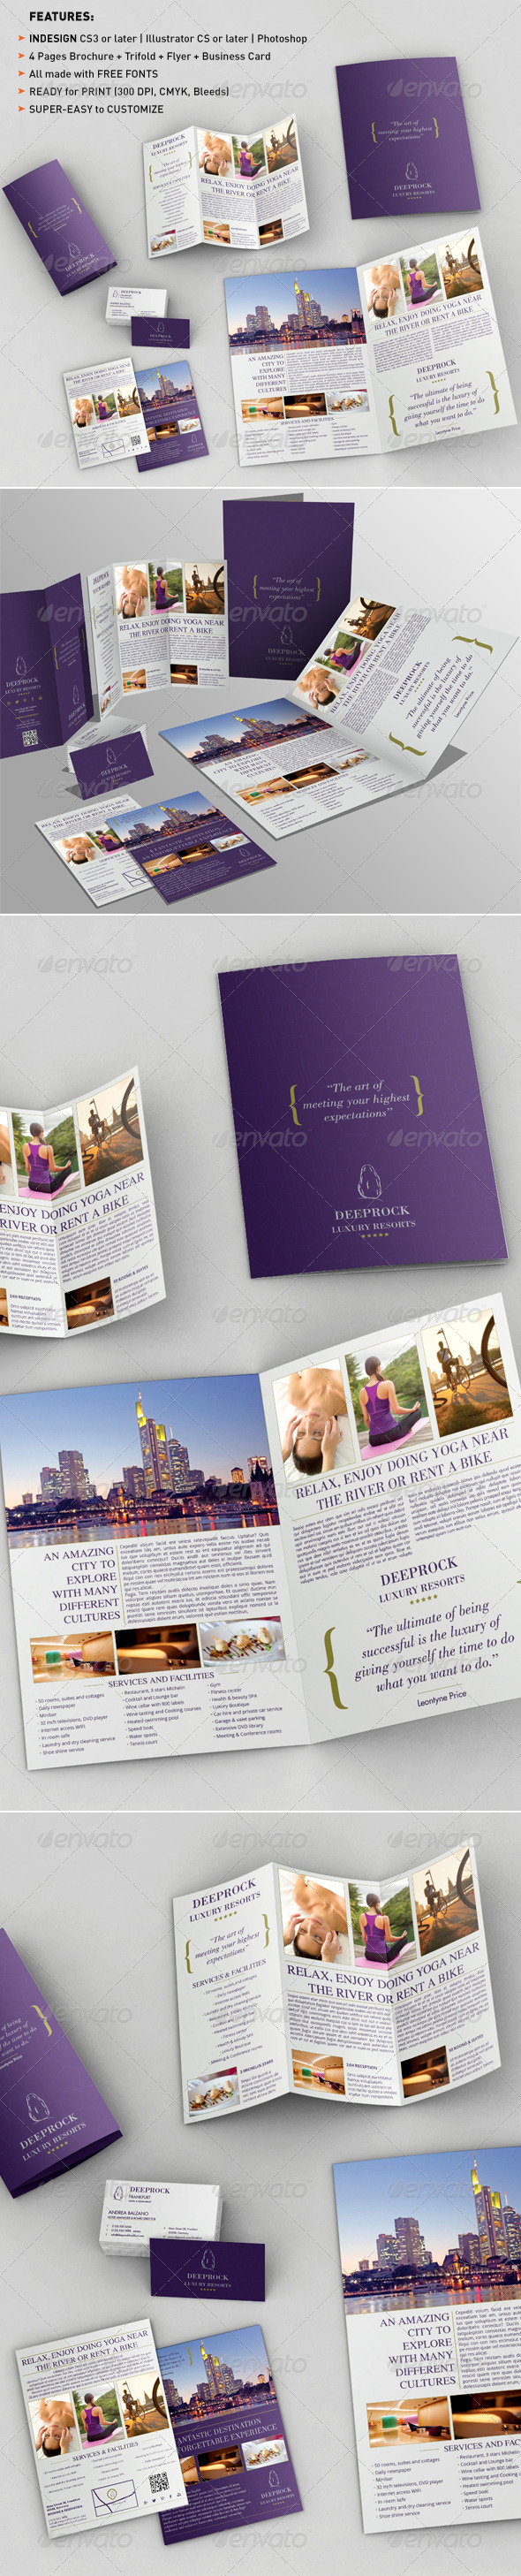 GraphicRiver Bifold Brochure & Trifold & Flyer & BC Templates 1537817